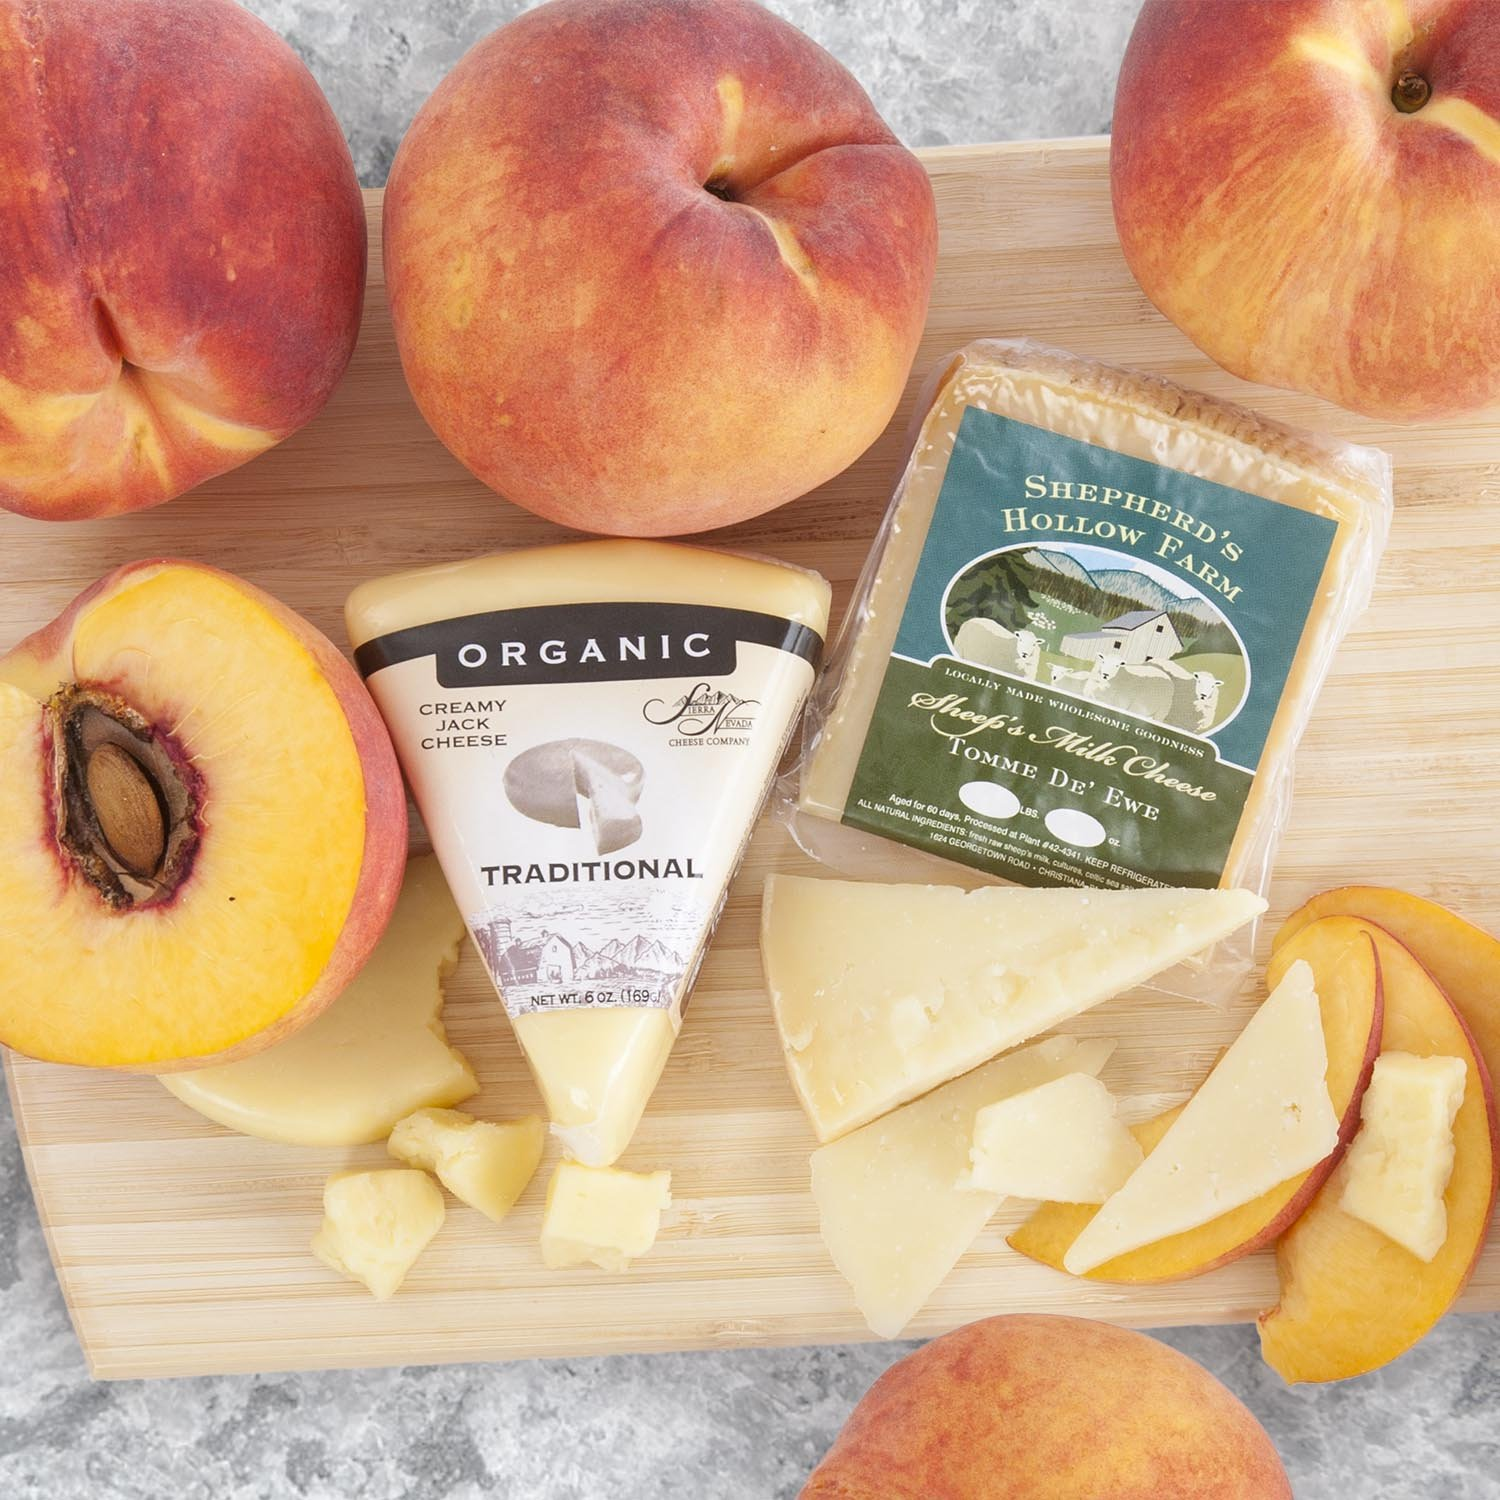 Golden State Fruit Monthly Fruit and Cheese Club (Premium Version) - 6 Month Club by Golden State Fruit (Image #3)